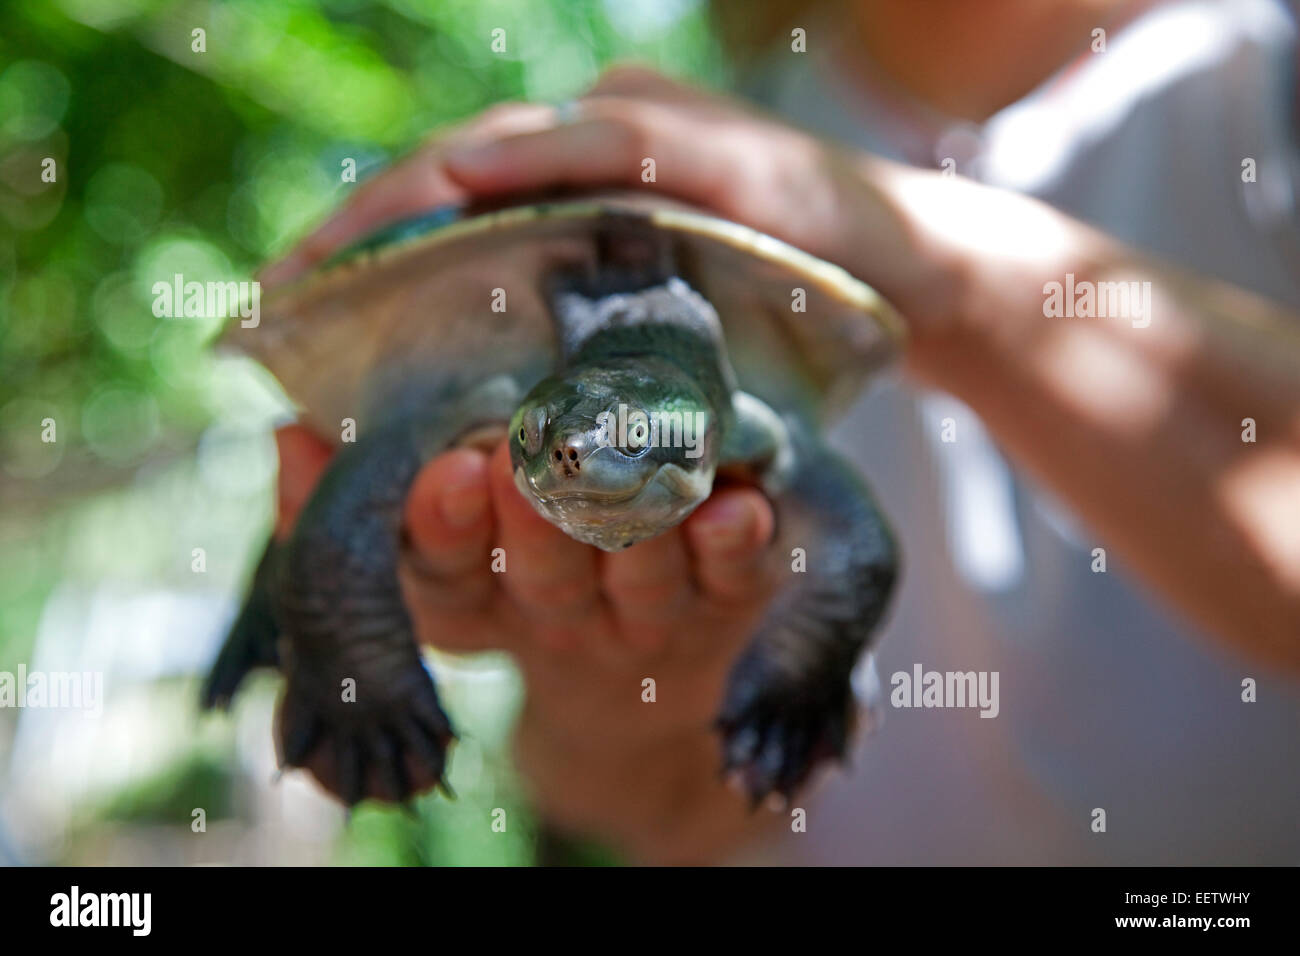 Freshwater turtle in the hands of a ranger at Bungalow Bay Koala Village on Magnetic Island, Queensland, Australia - Stock Image